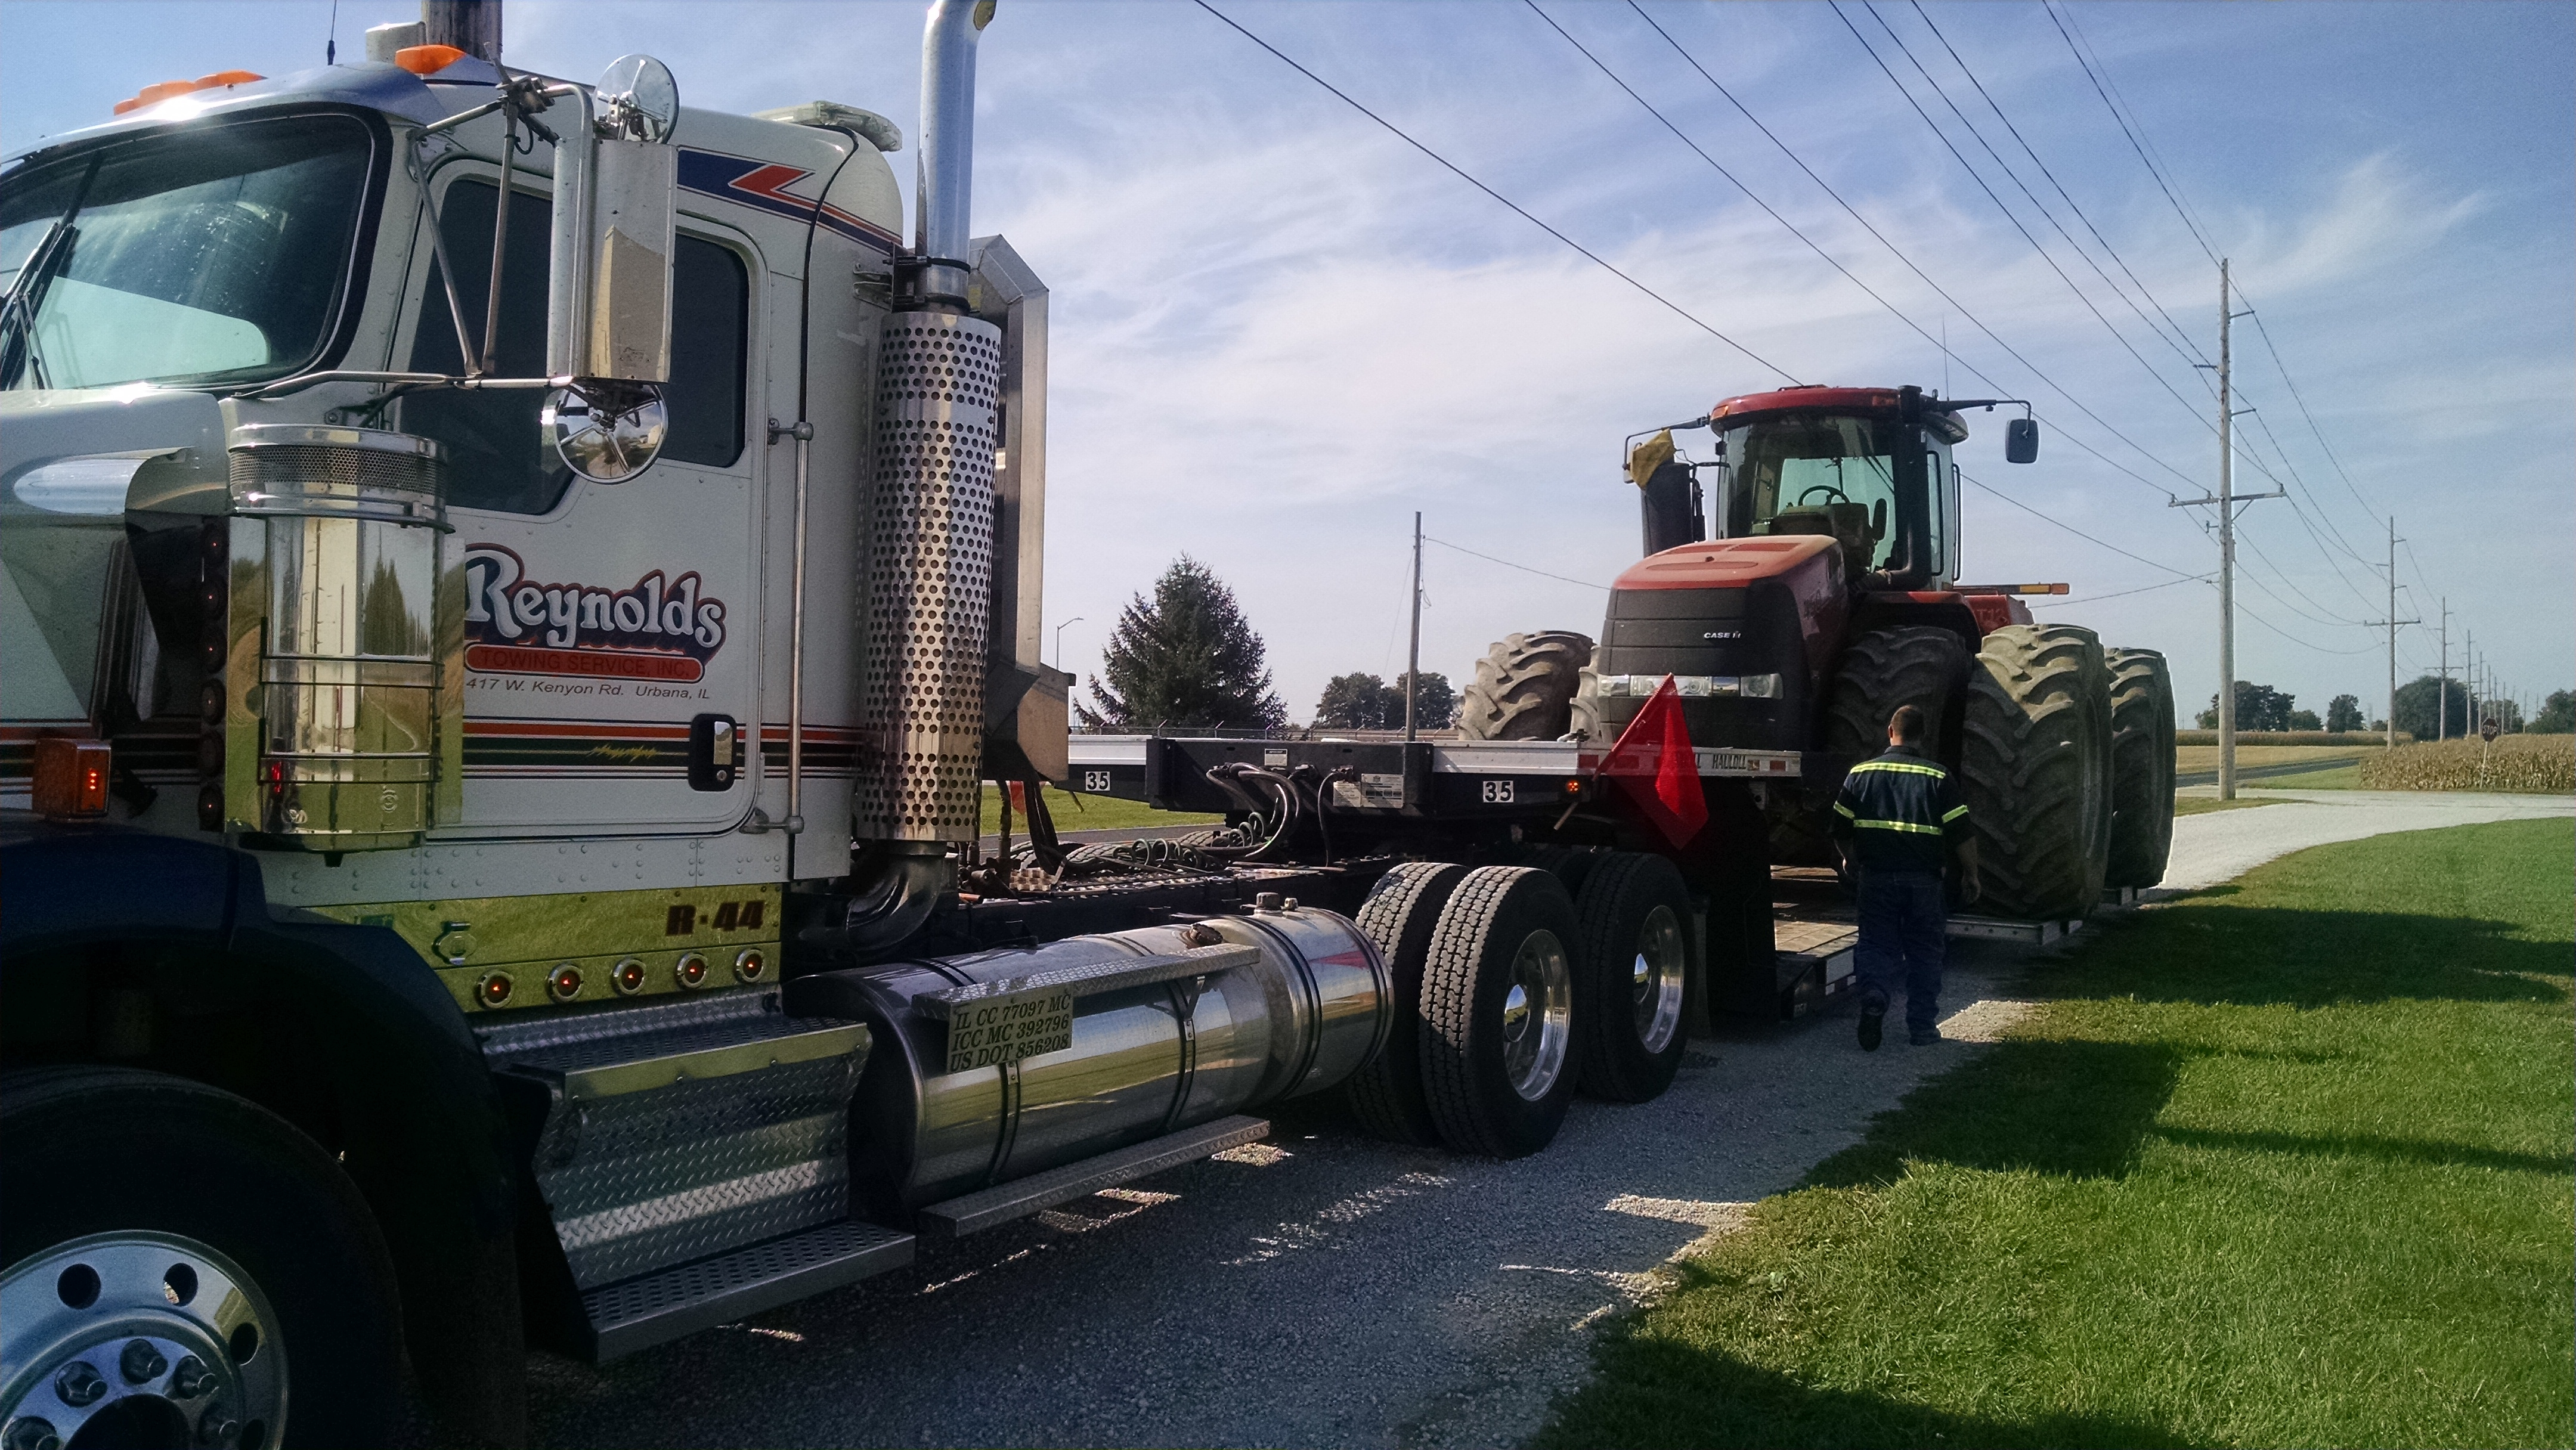 Reynolds Towing Service image 11